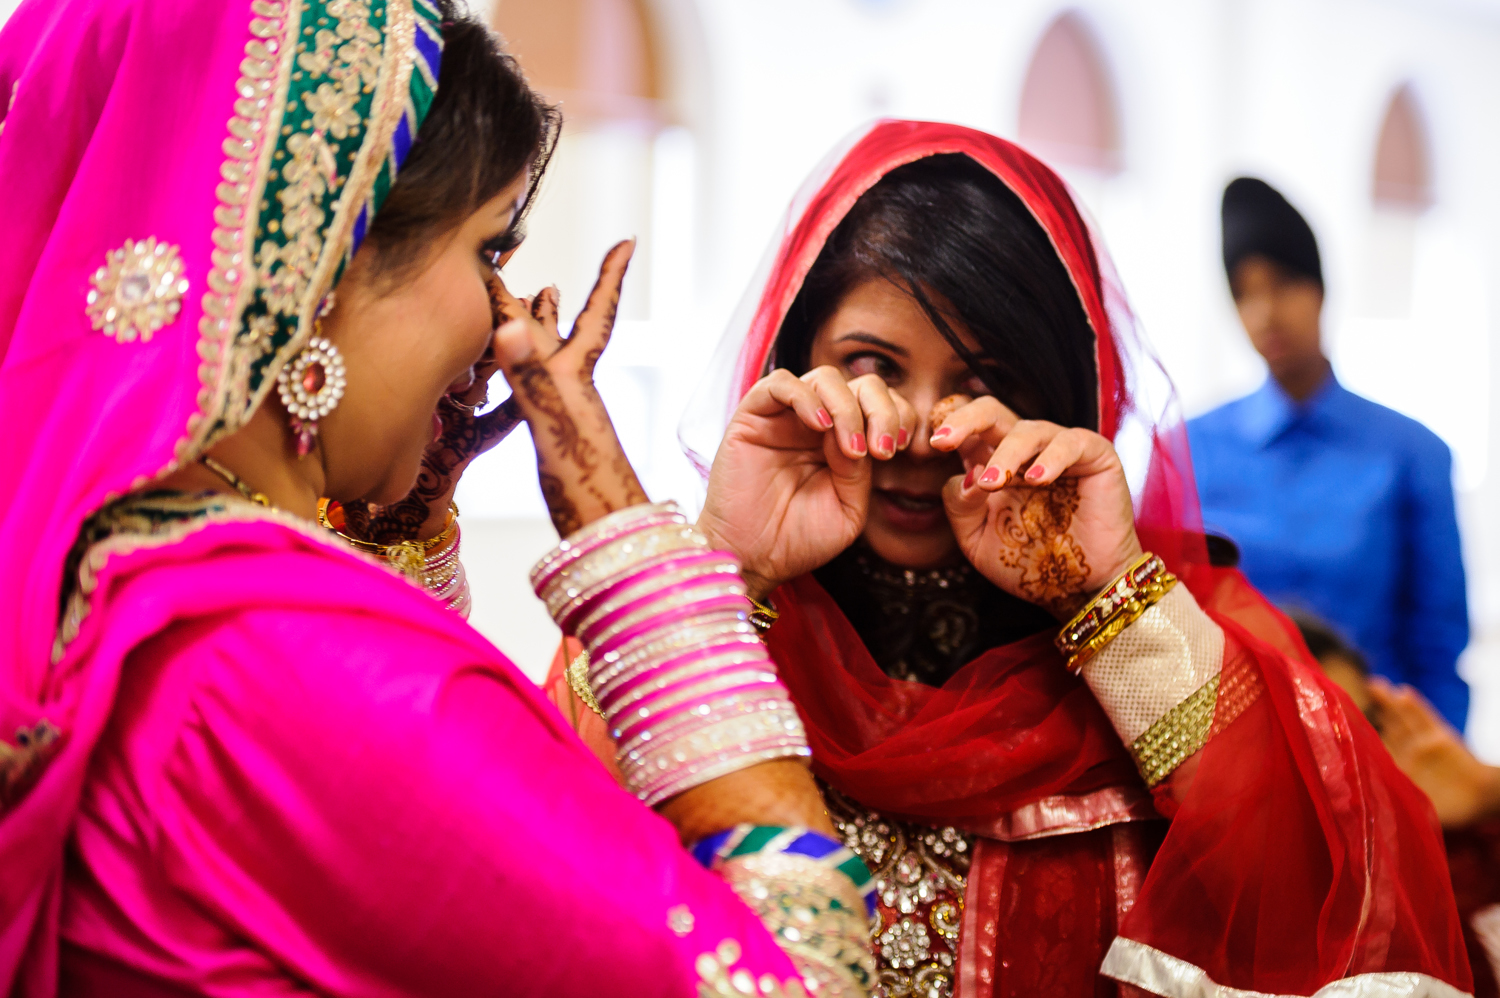 Nav-and-Rav-Sikh-Wedding-0016.JPG